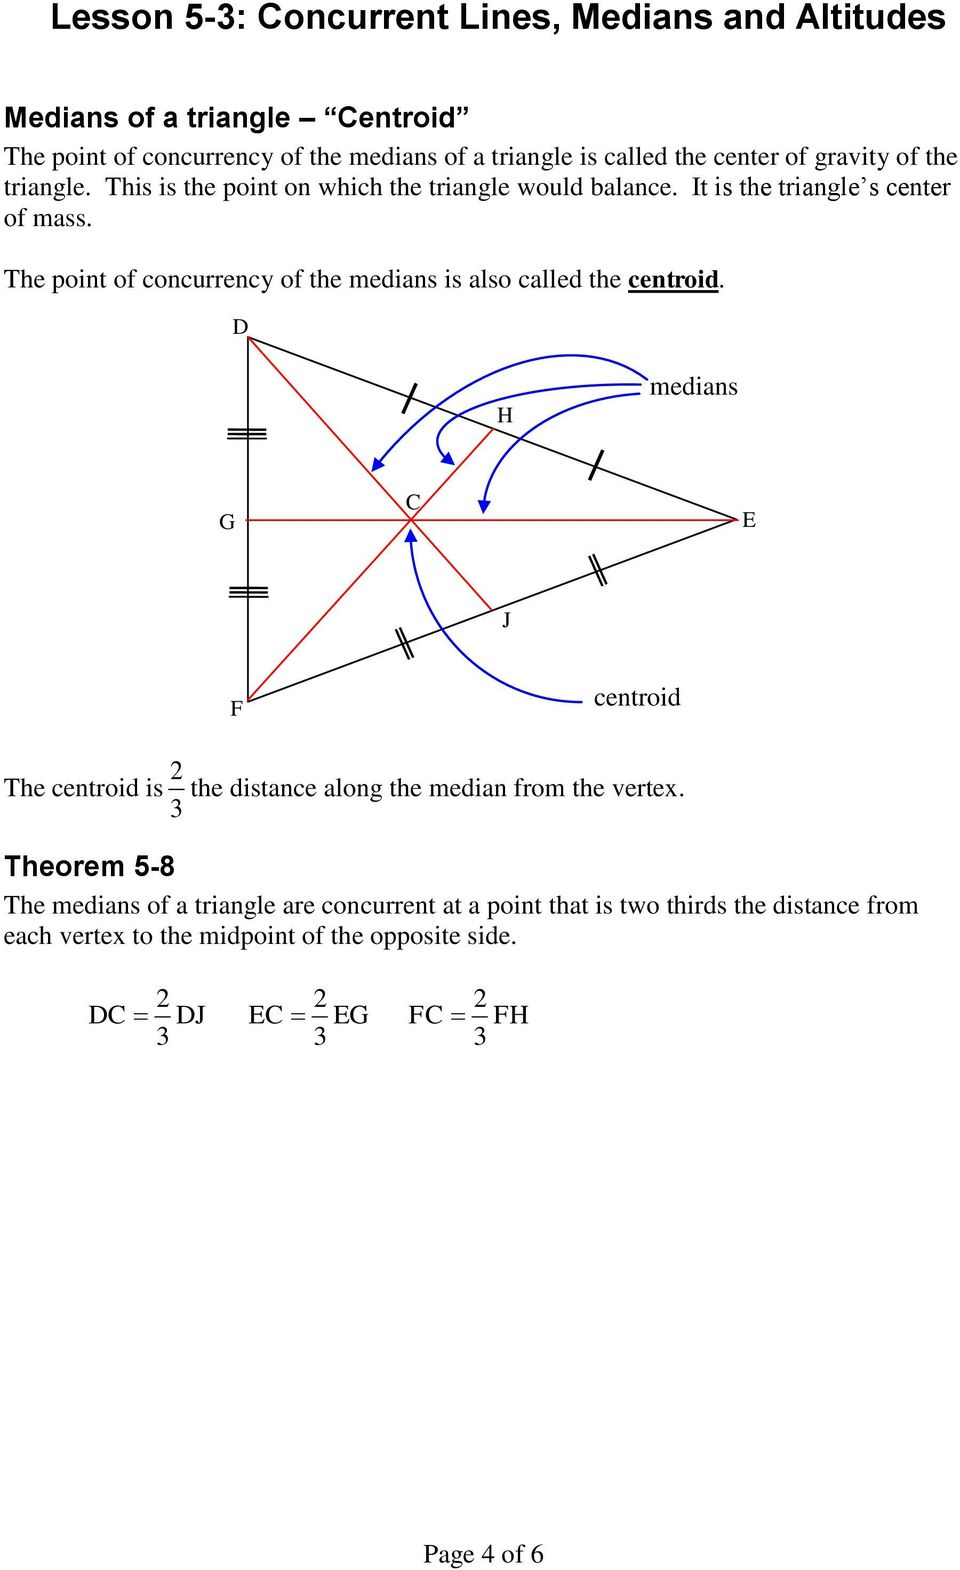 The point of concurrency of the medians is also called the centroid.